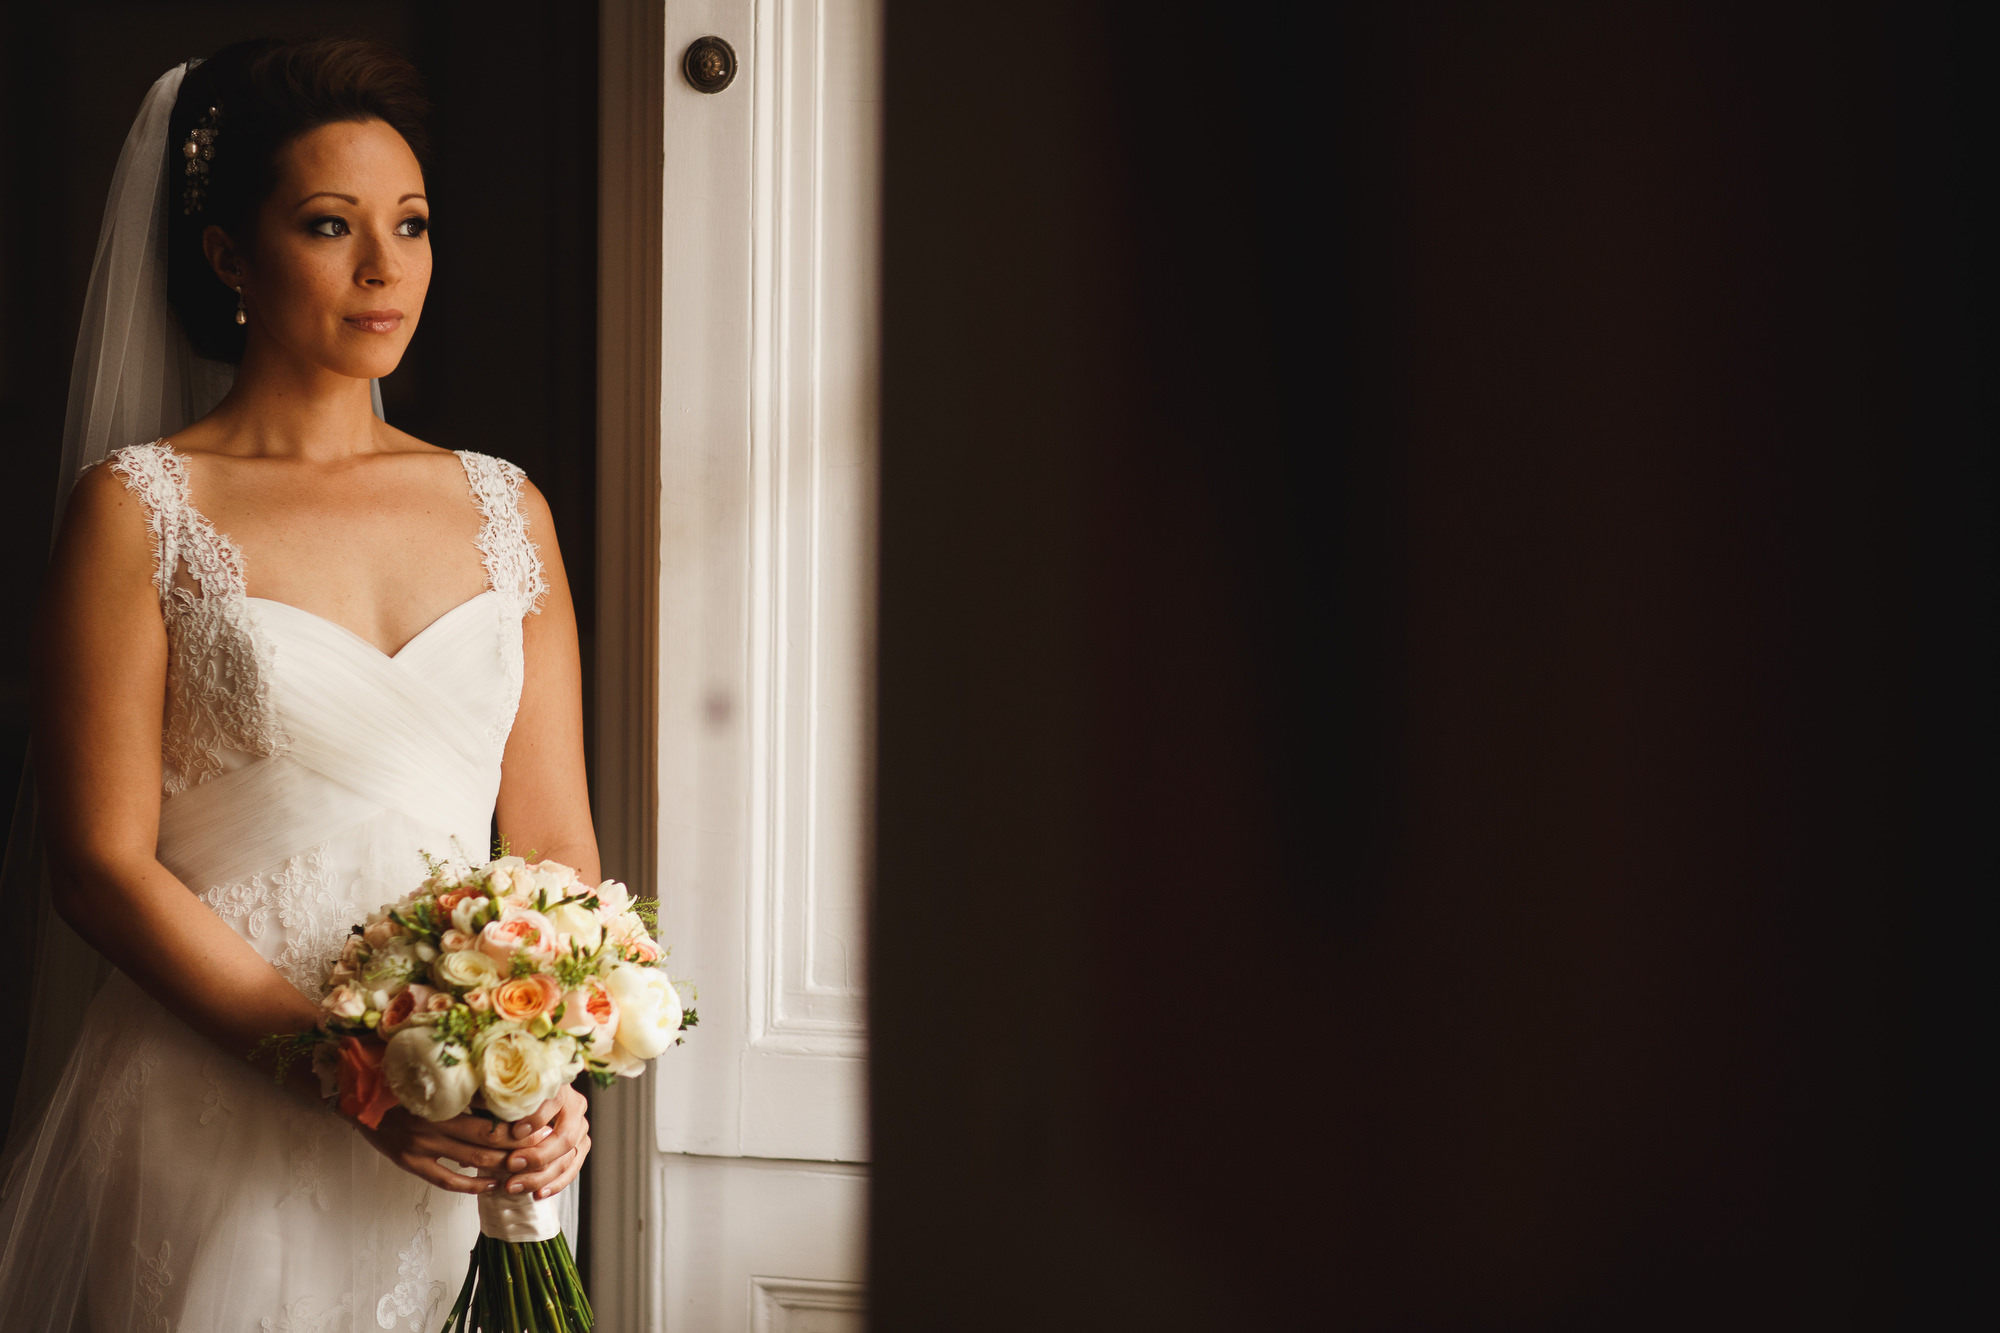 carlton house terrace wedding photographer